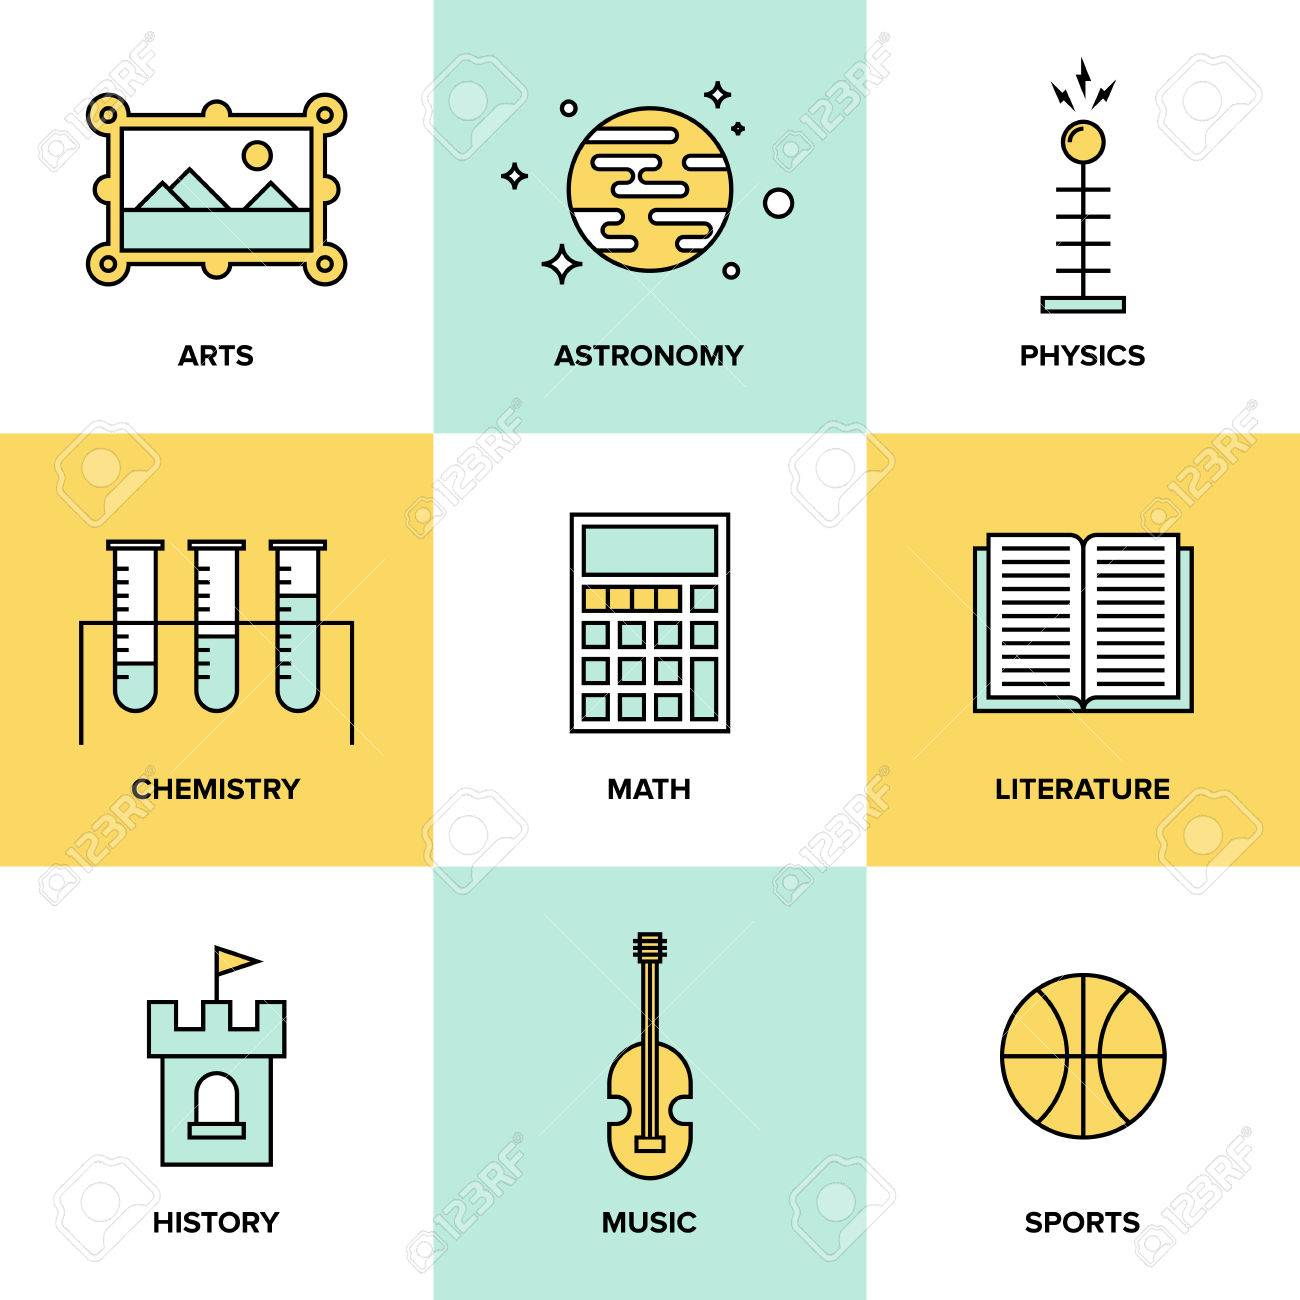 flat line icons set of education main subjects schooling symbol flat line icons set of education main subjects schooling symbol and learning elements studying